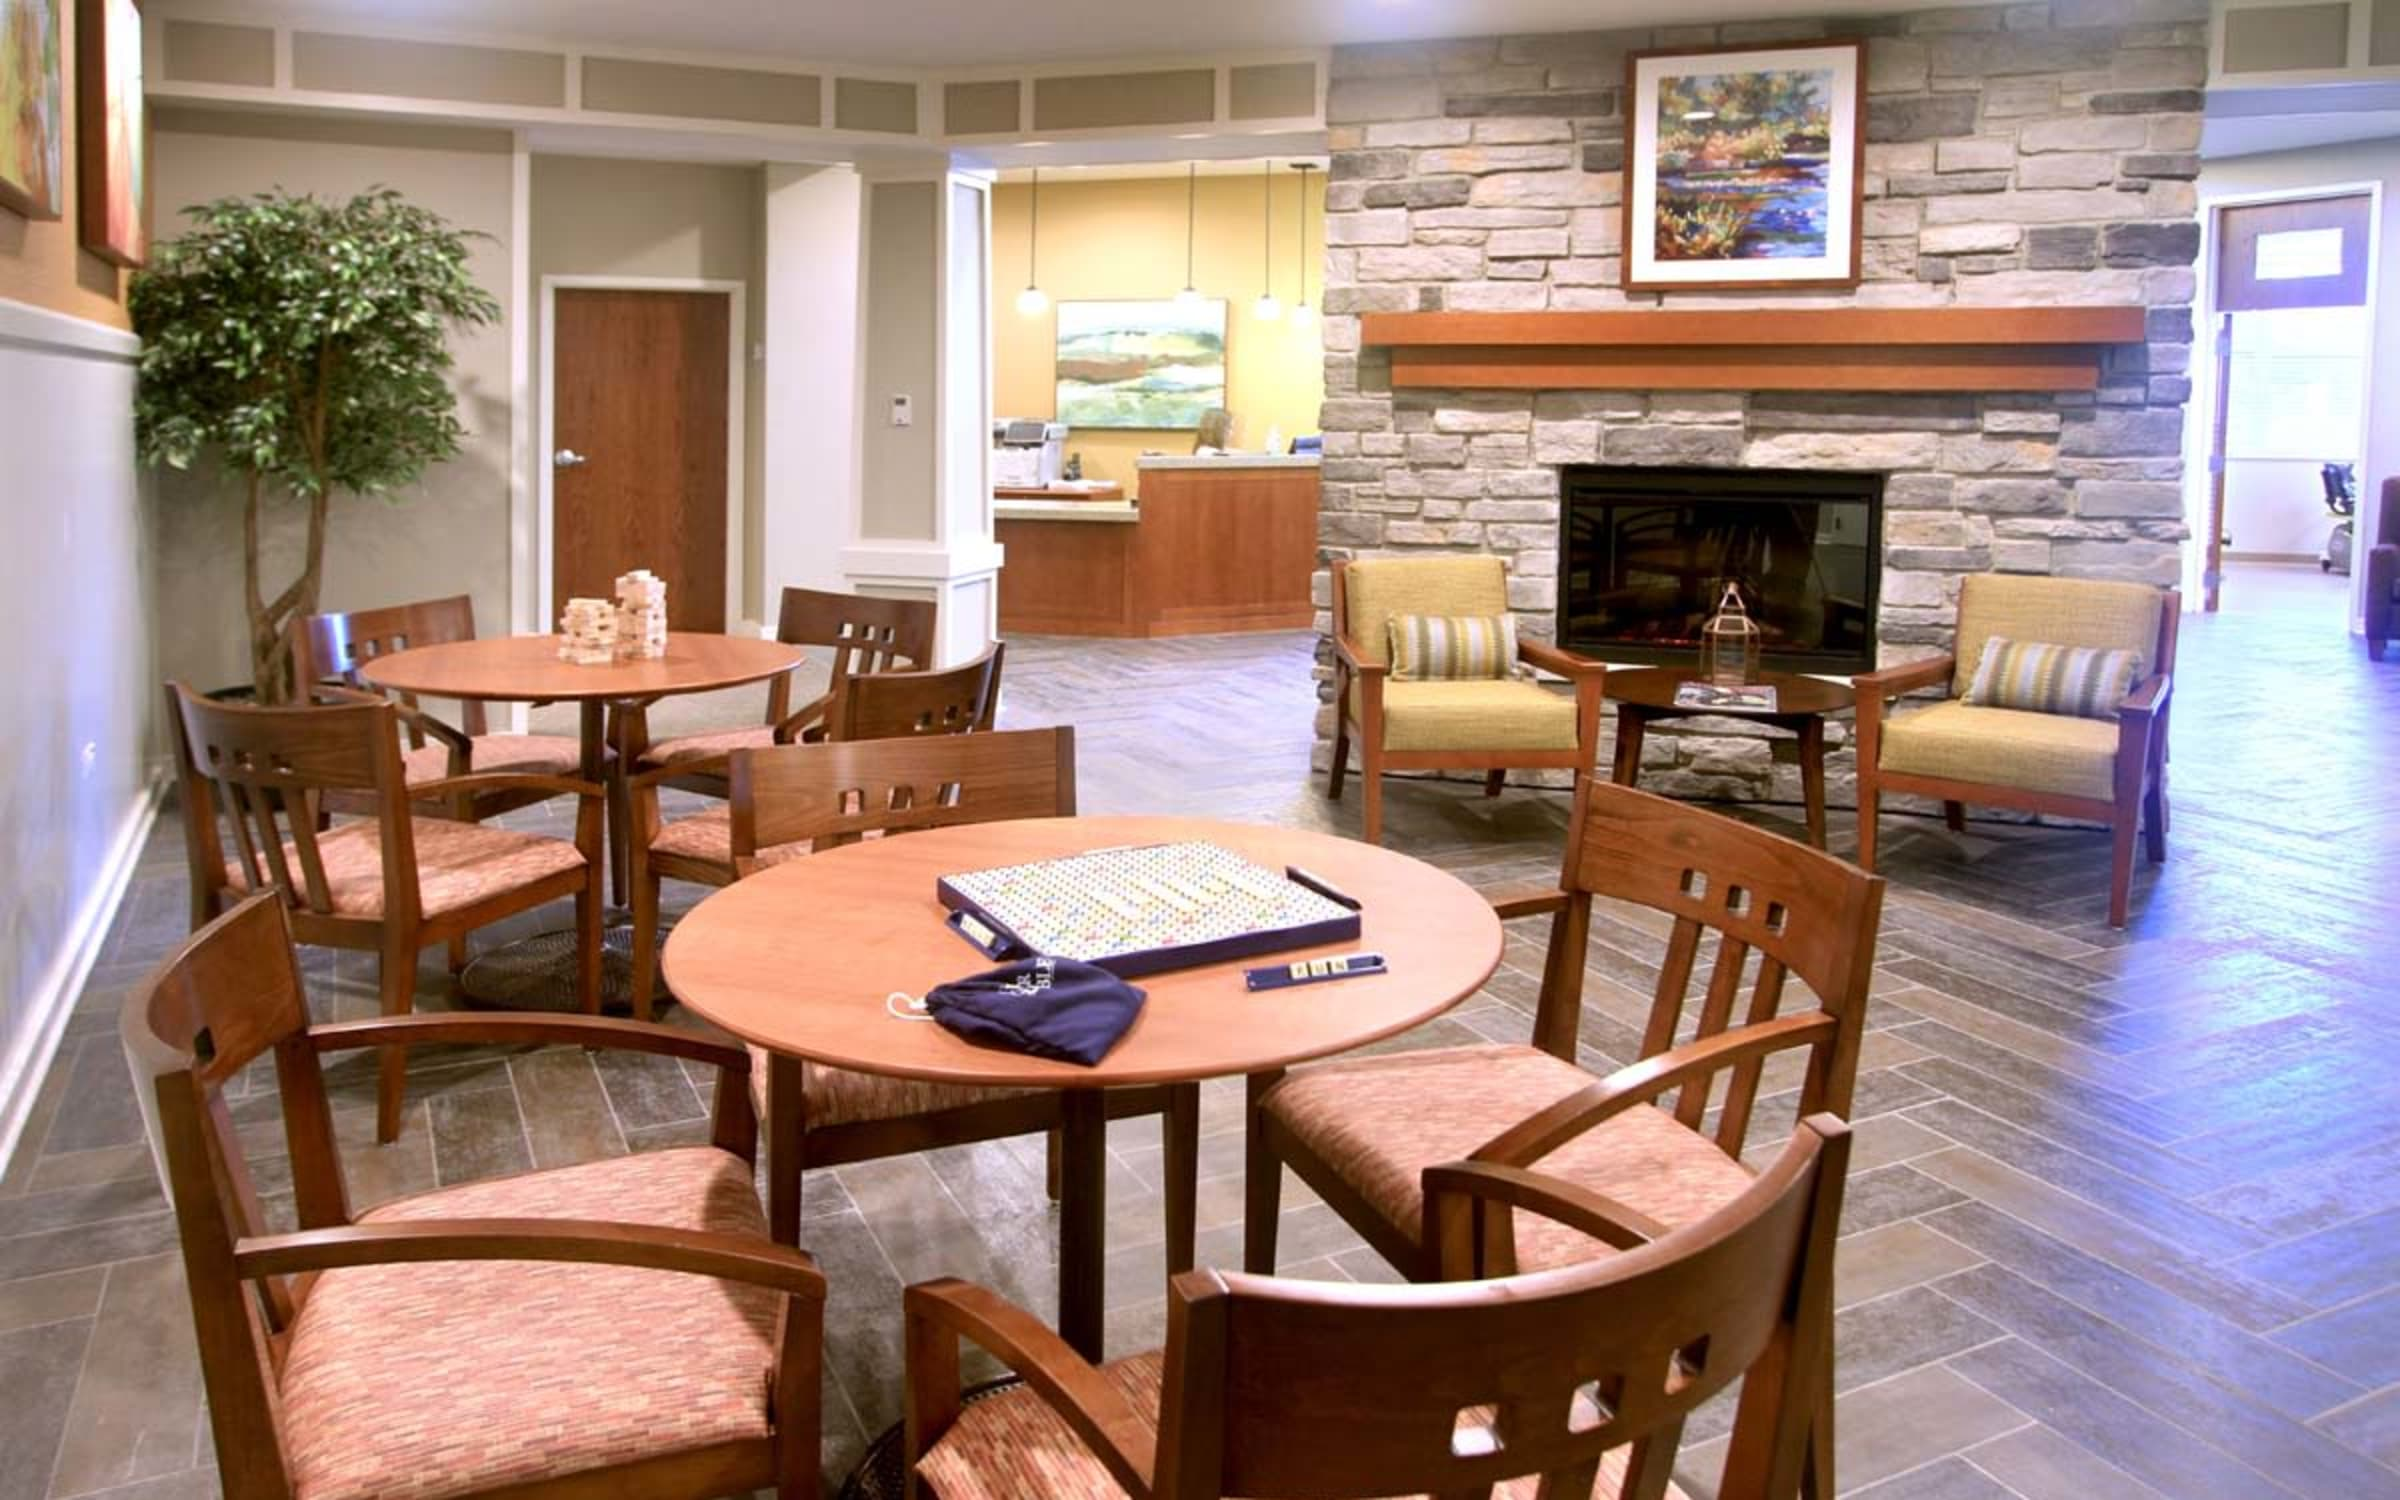 Services and amenities at Anthology of Wheaton in Wheaton, Illinois